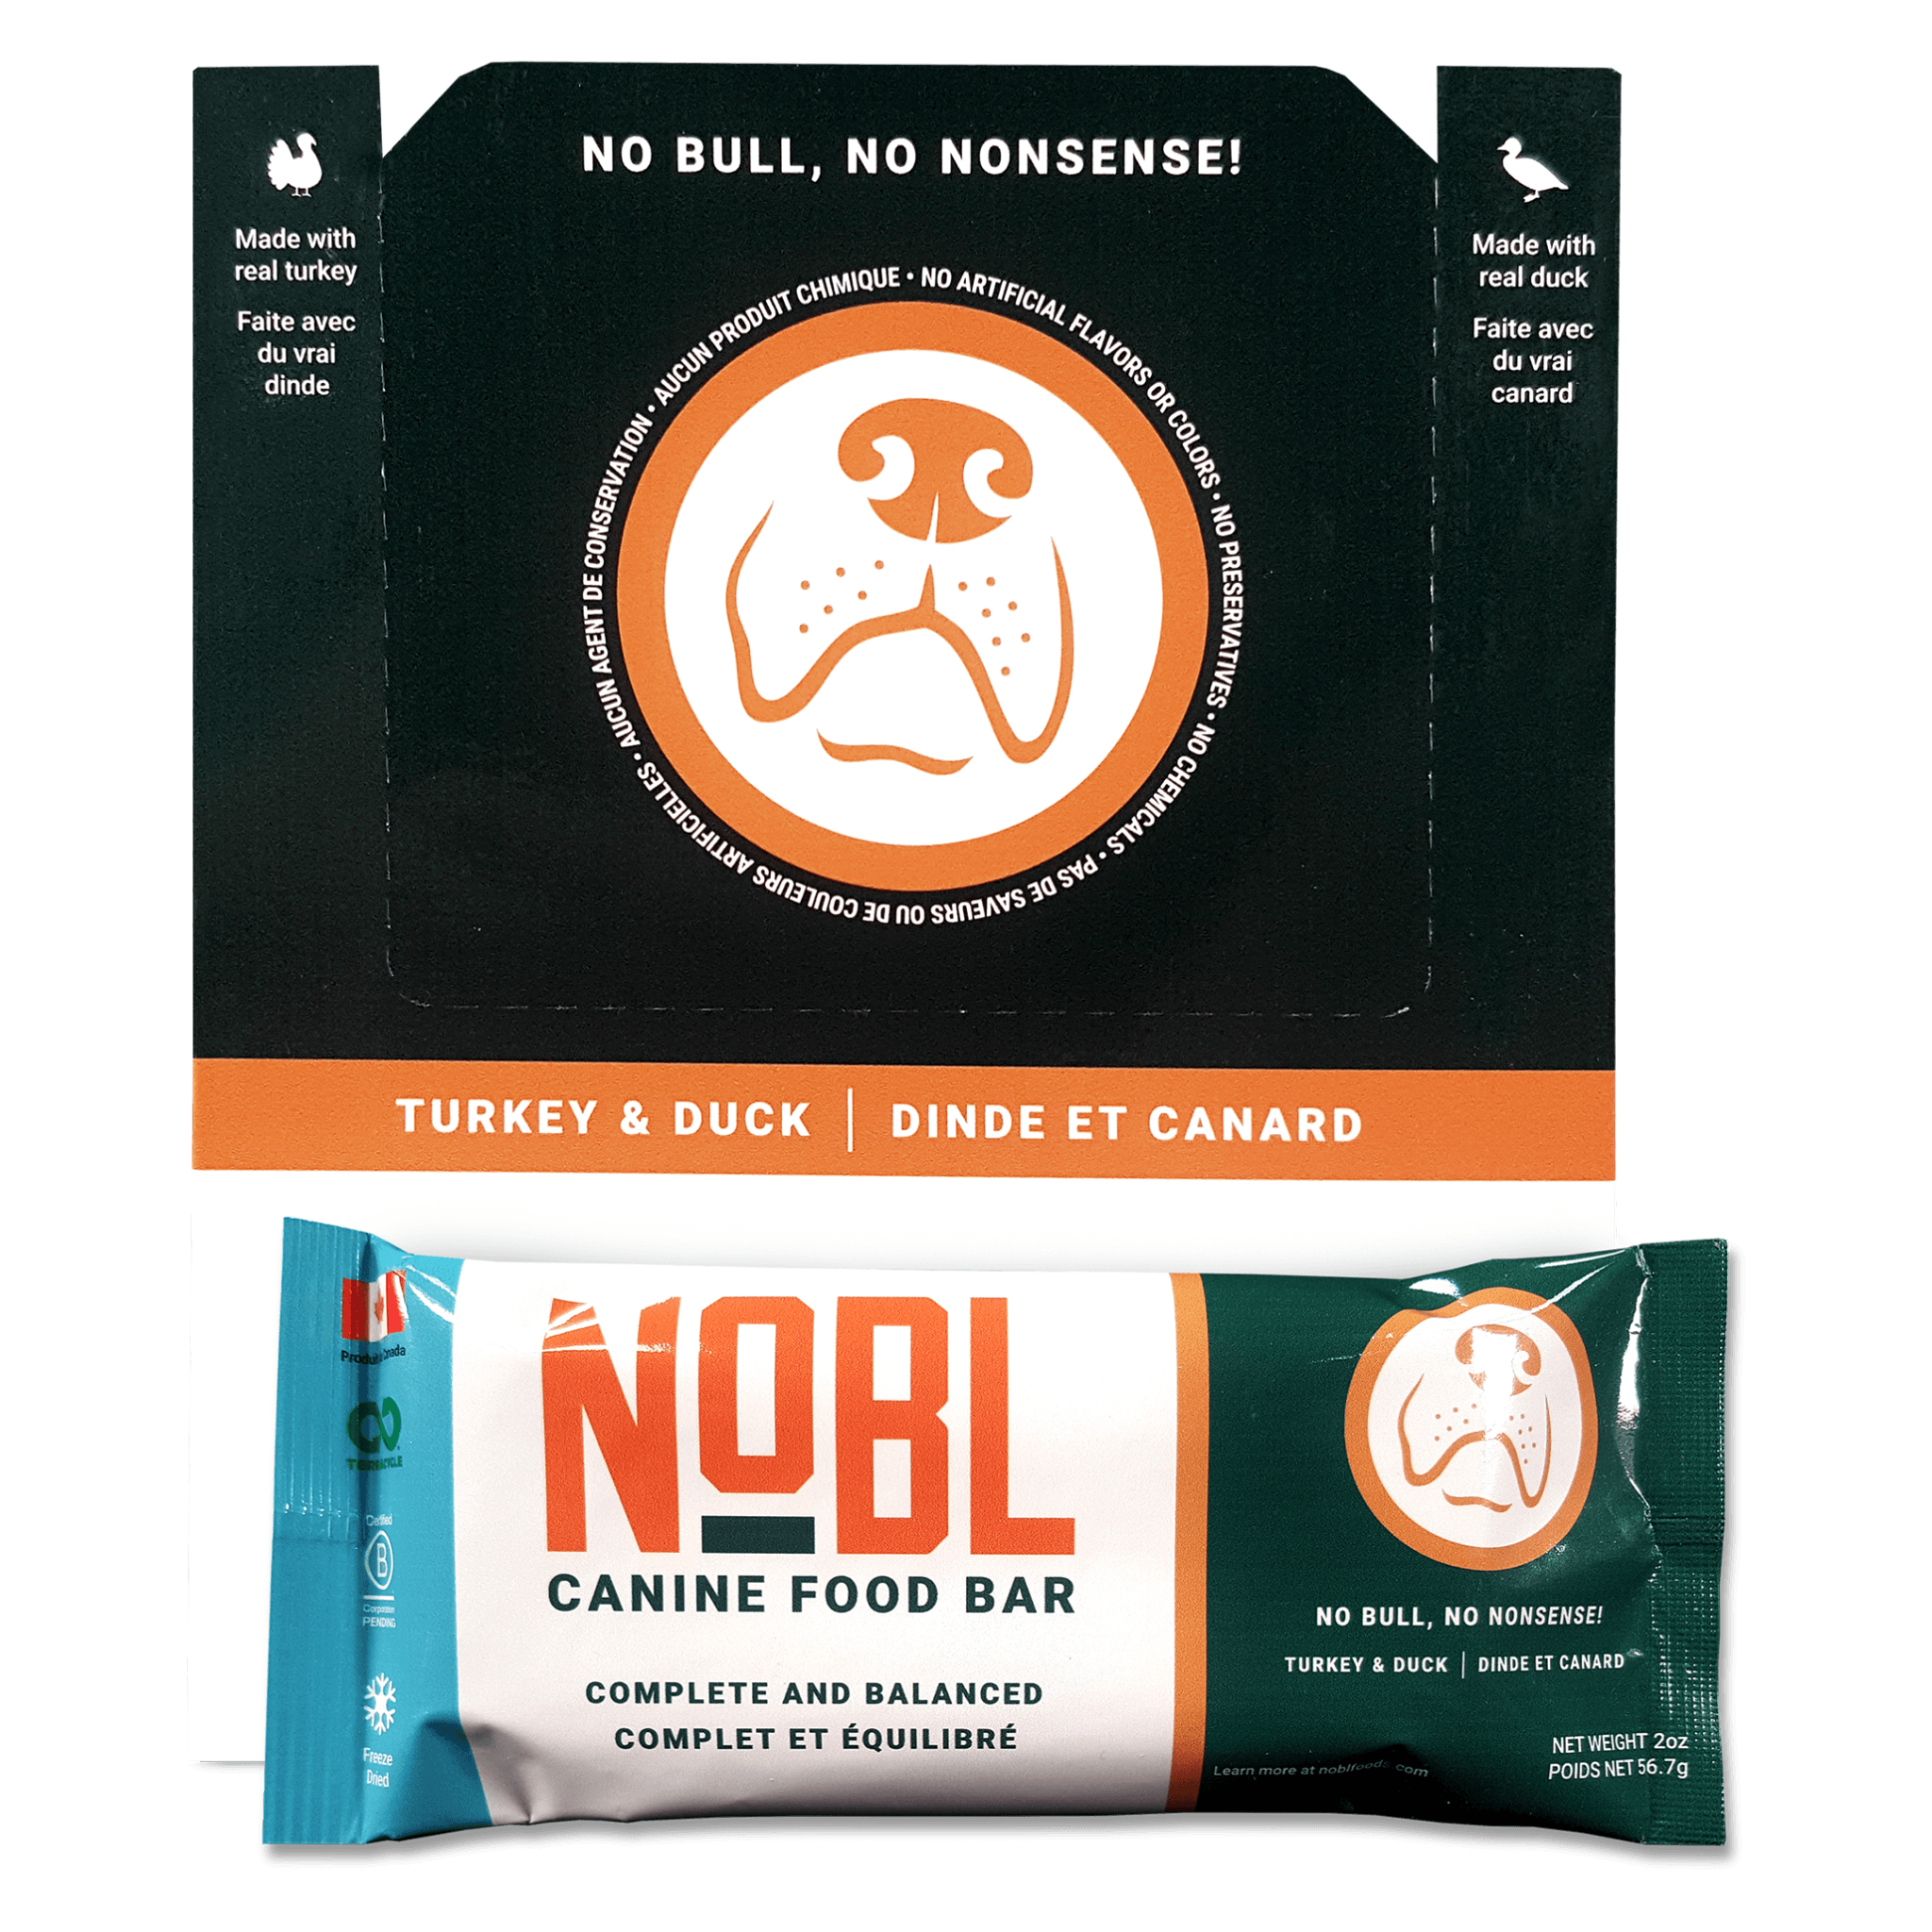 ADULT CANINE FOOD BARS: TURKEY & DUCK RECIPE: CASE - NOBL Foods